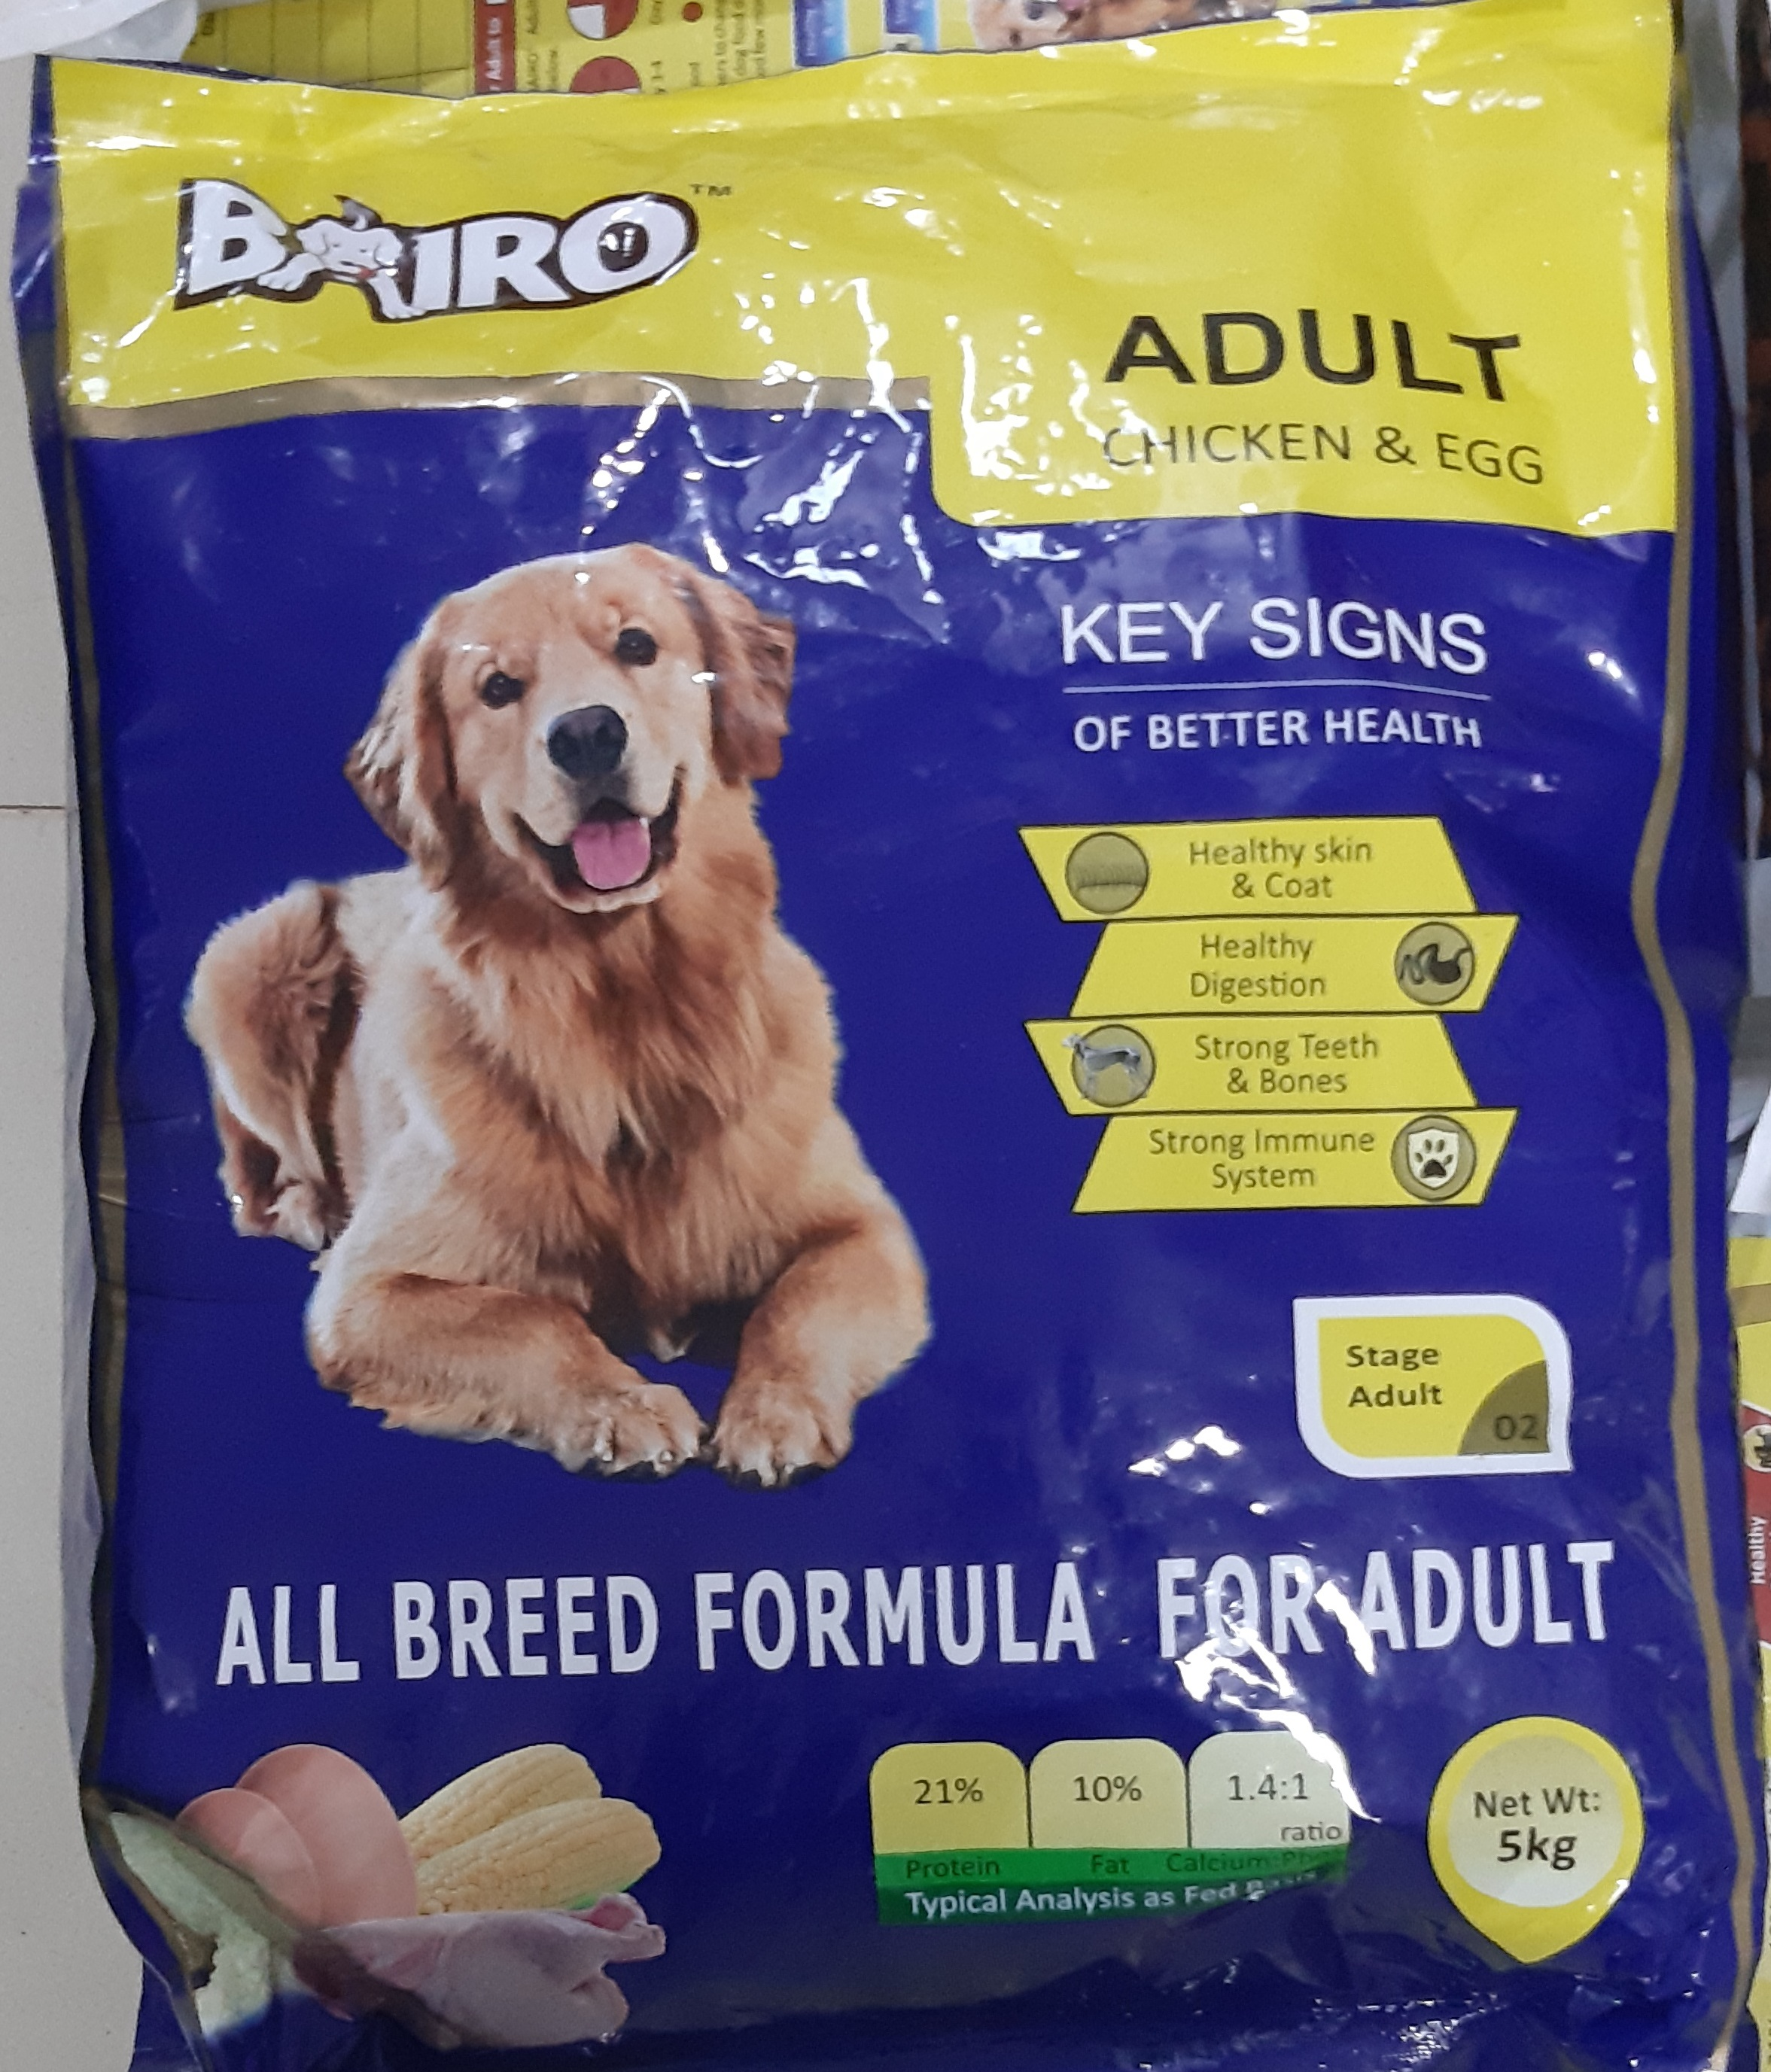 BAIRO adult chicken and eggs (5Kg)